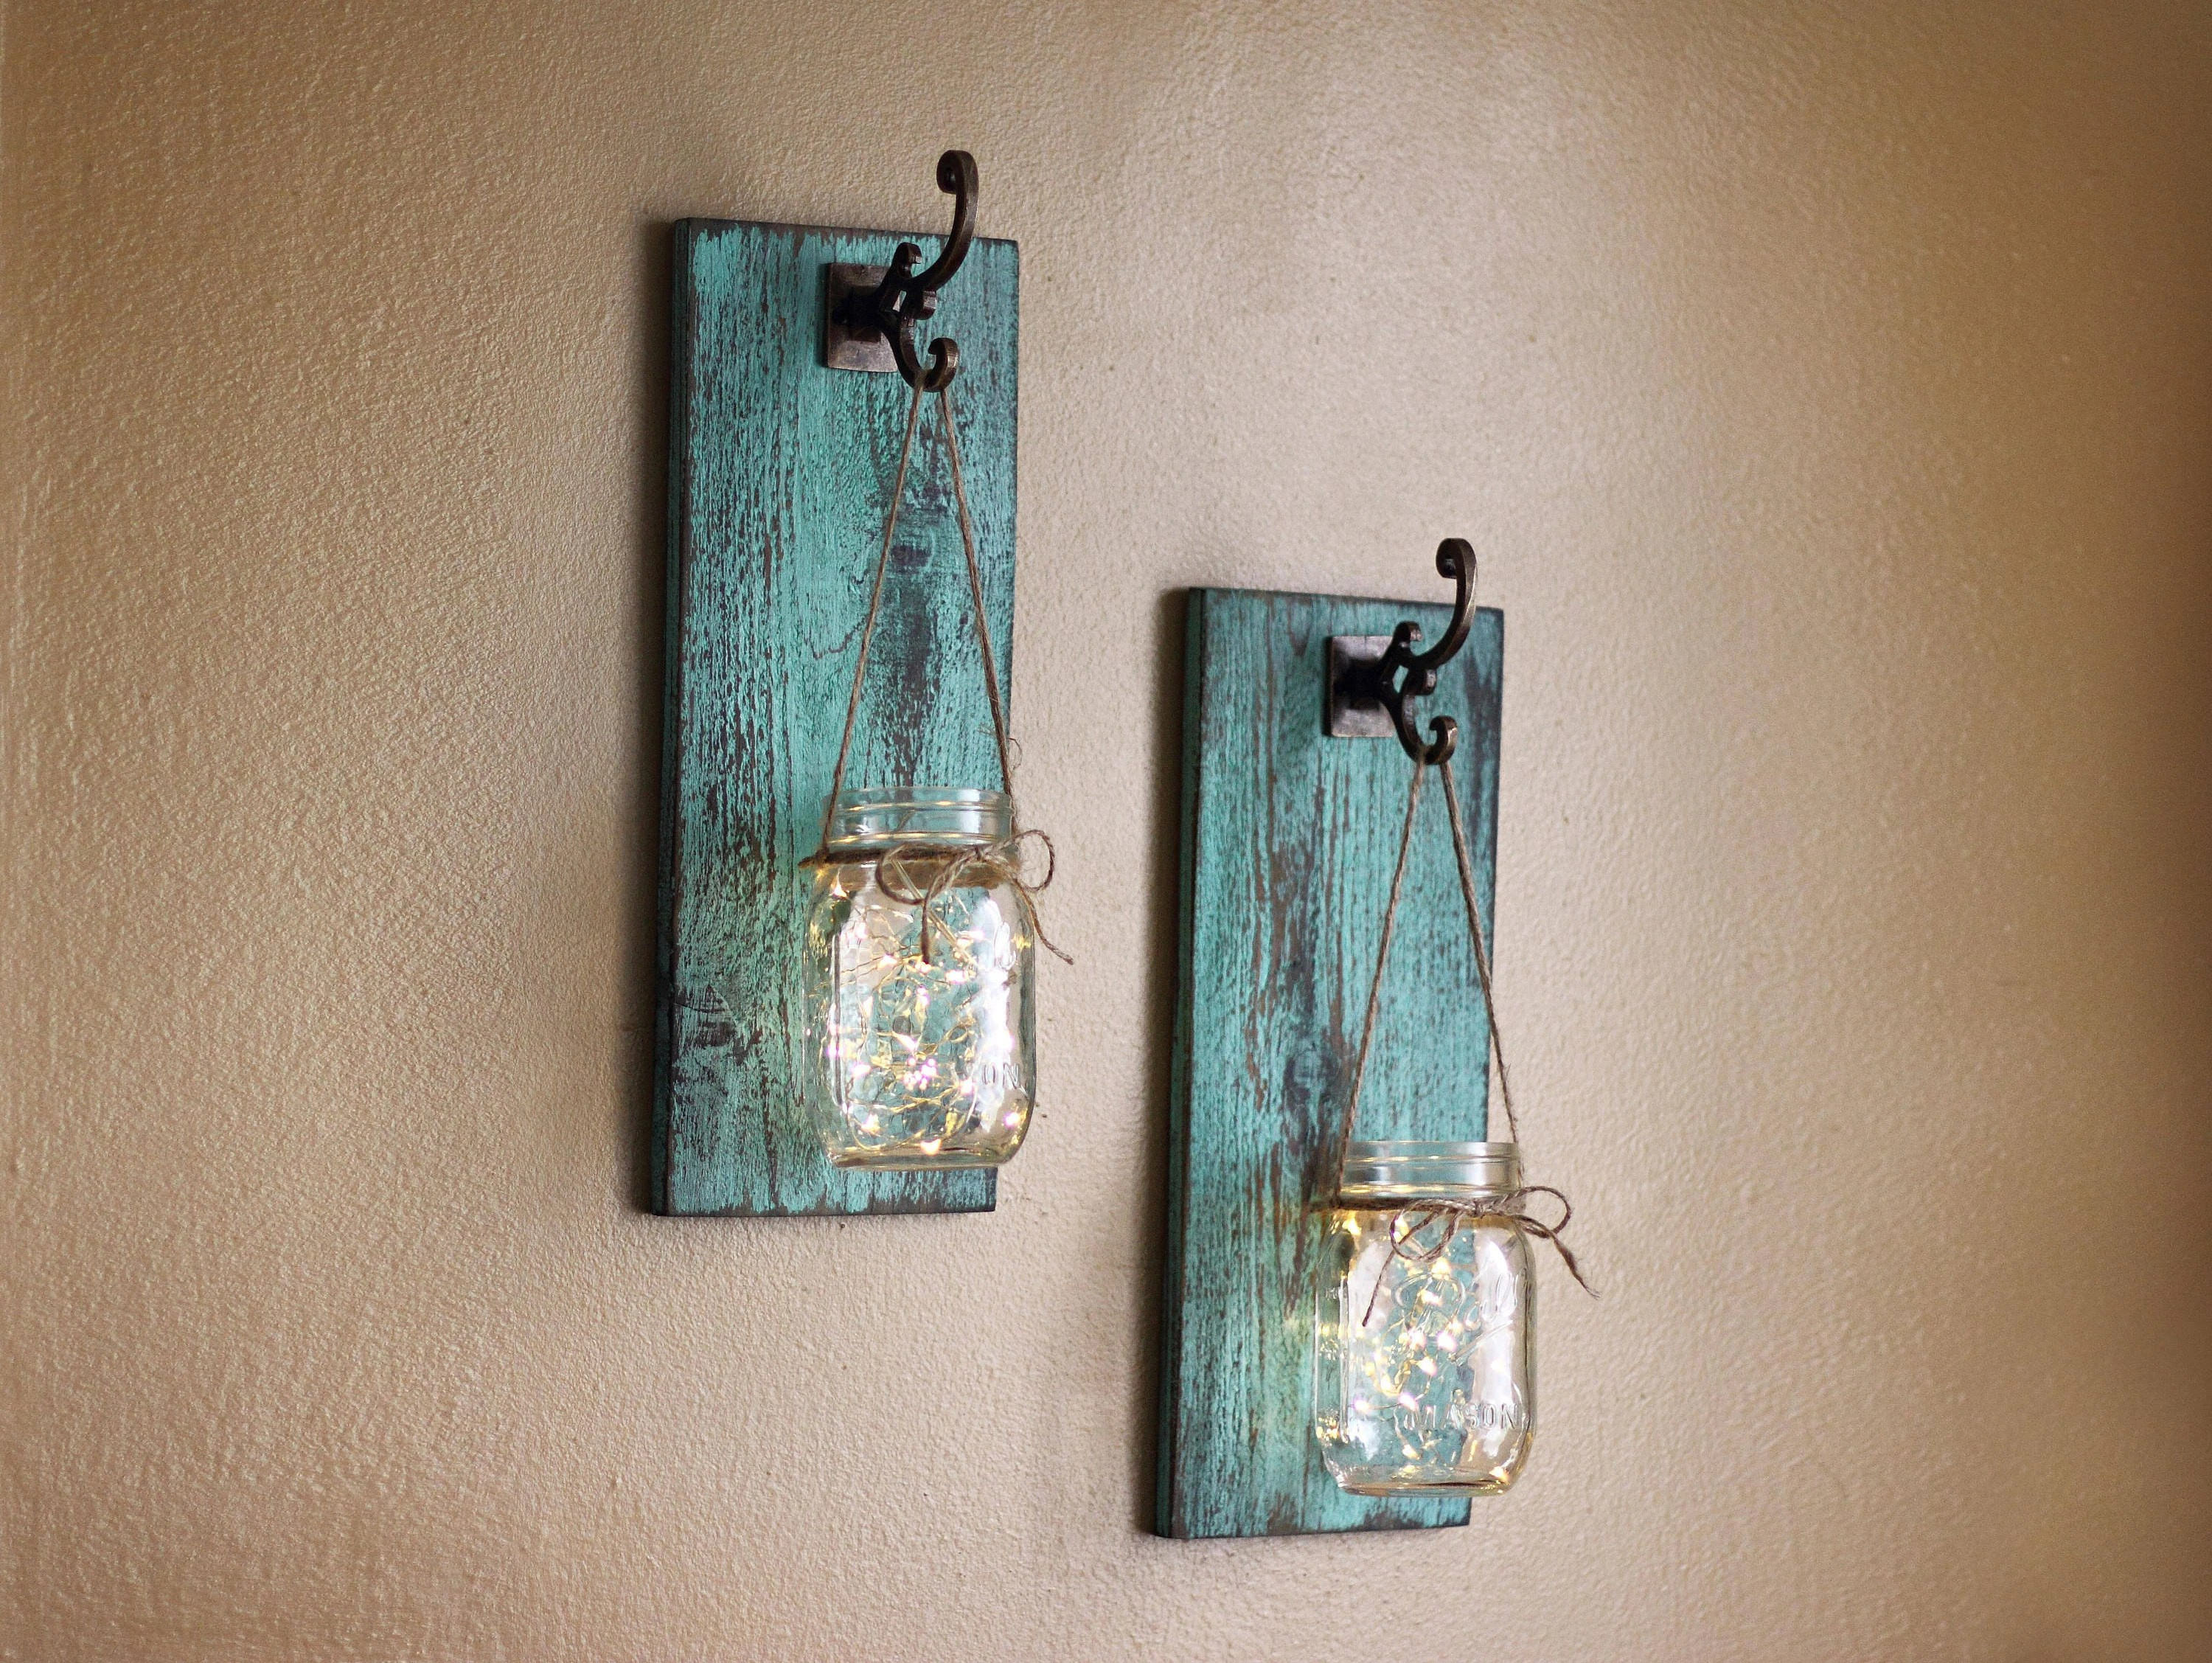 Rustic Wall Decor Mason Jar Wall Sconces Farmhouse Wall on Wood Wall Sconces id=51935